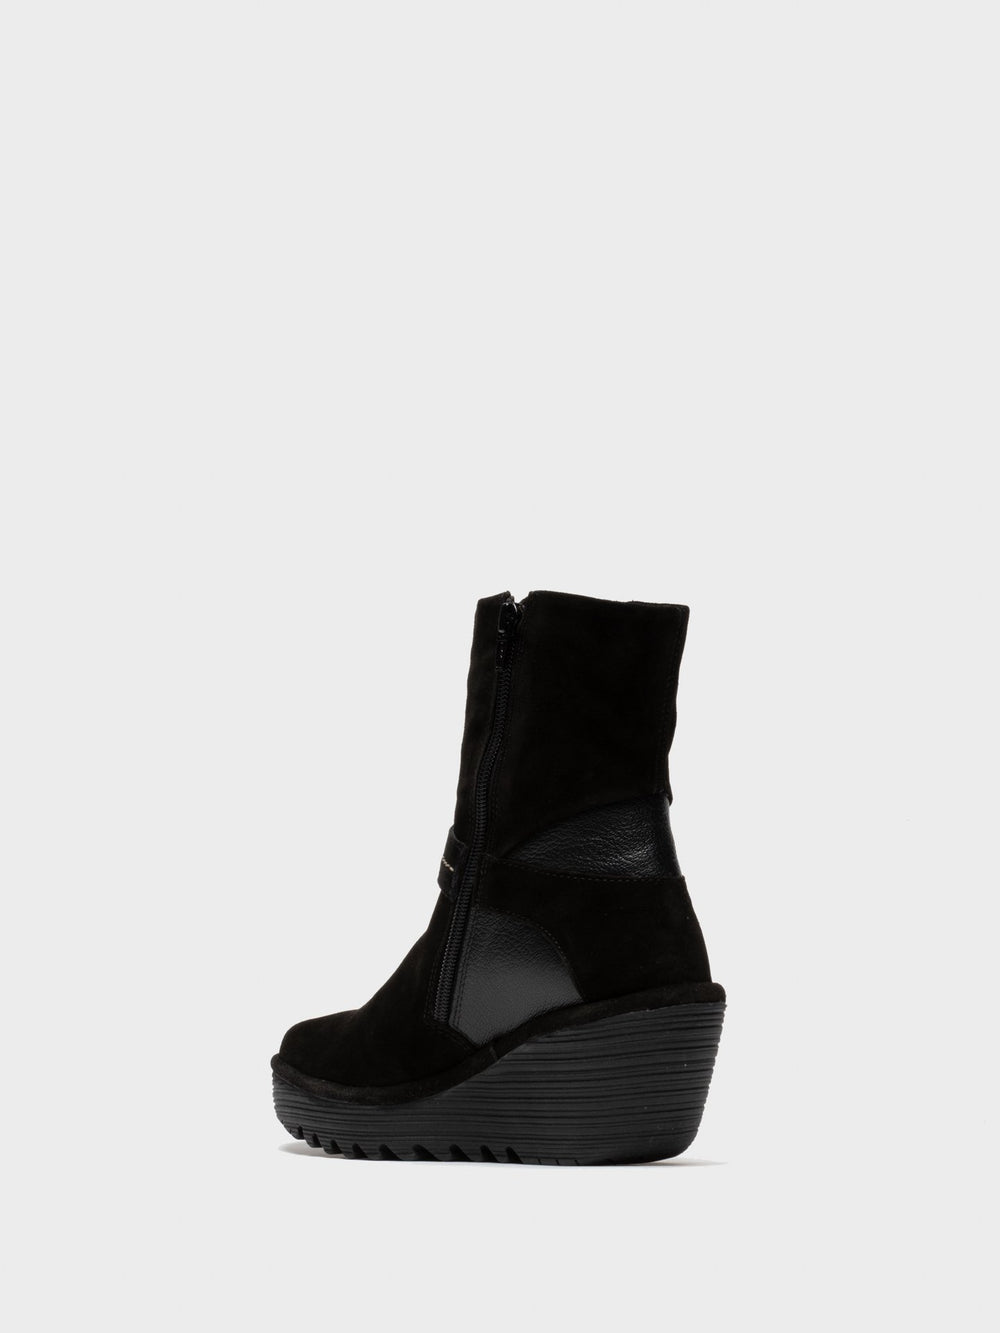 Zip Up Ankle Boots YOME083FLY BLACK/BLACK